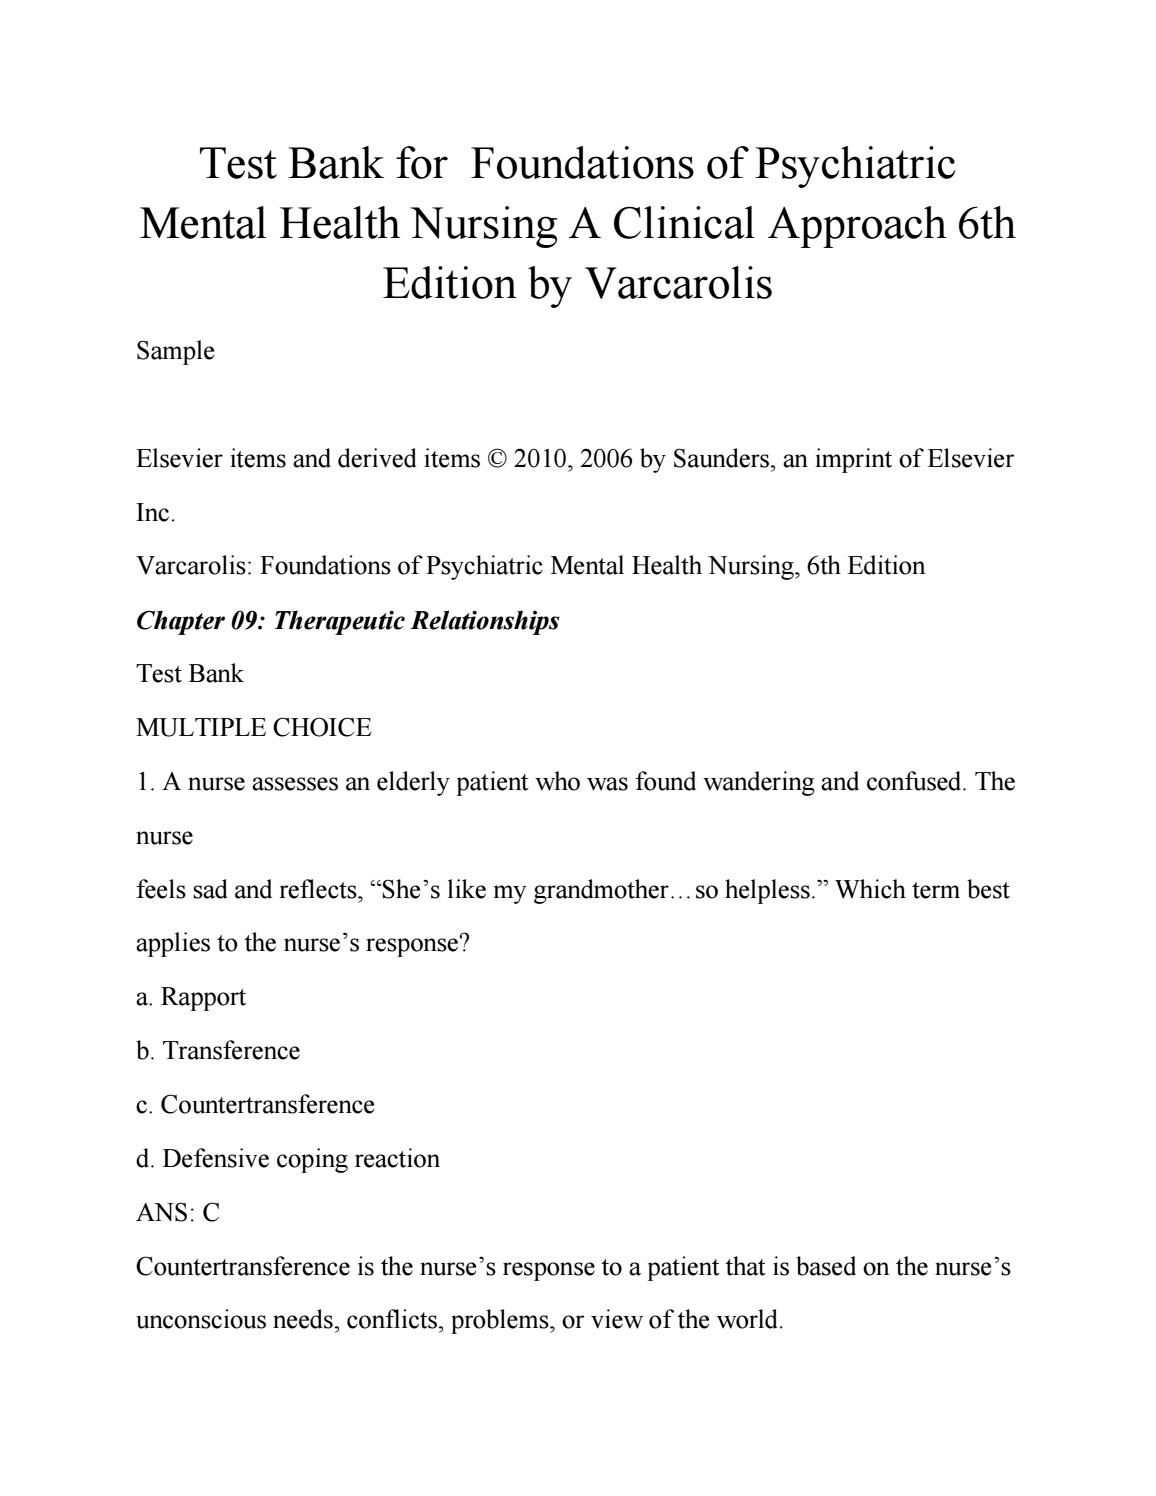 Test bank for foundations of psychiatric mental health